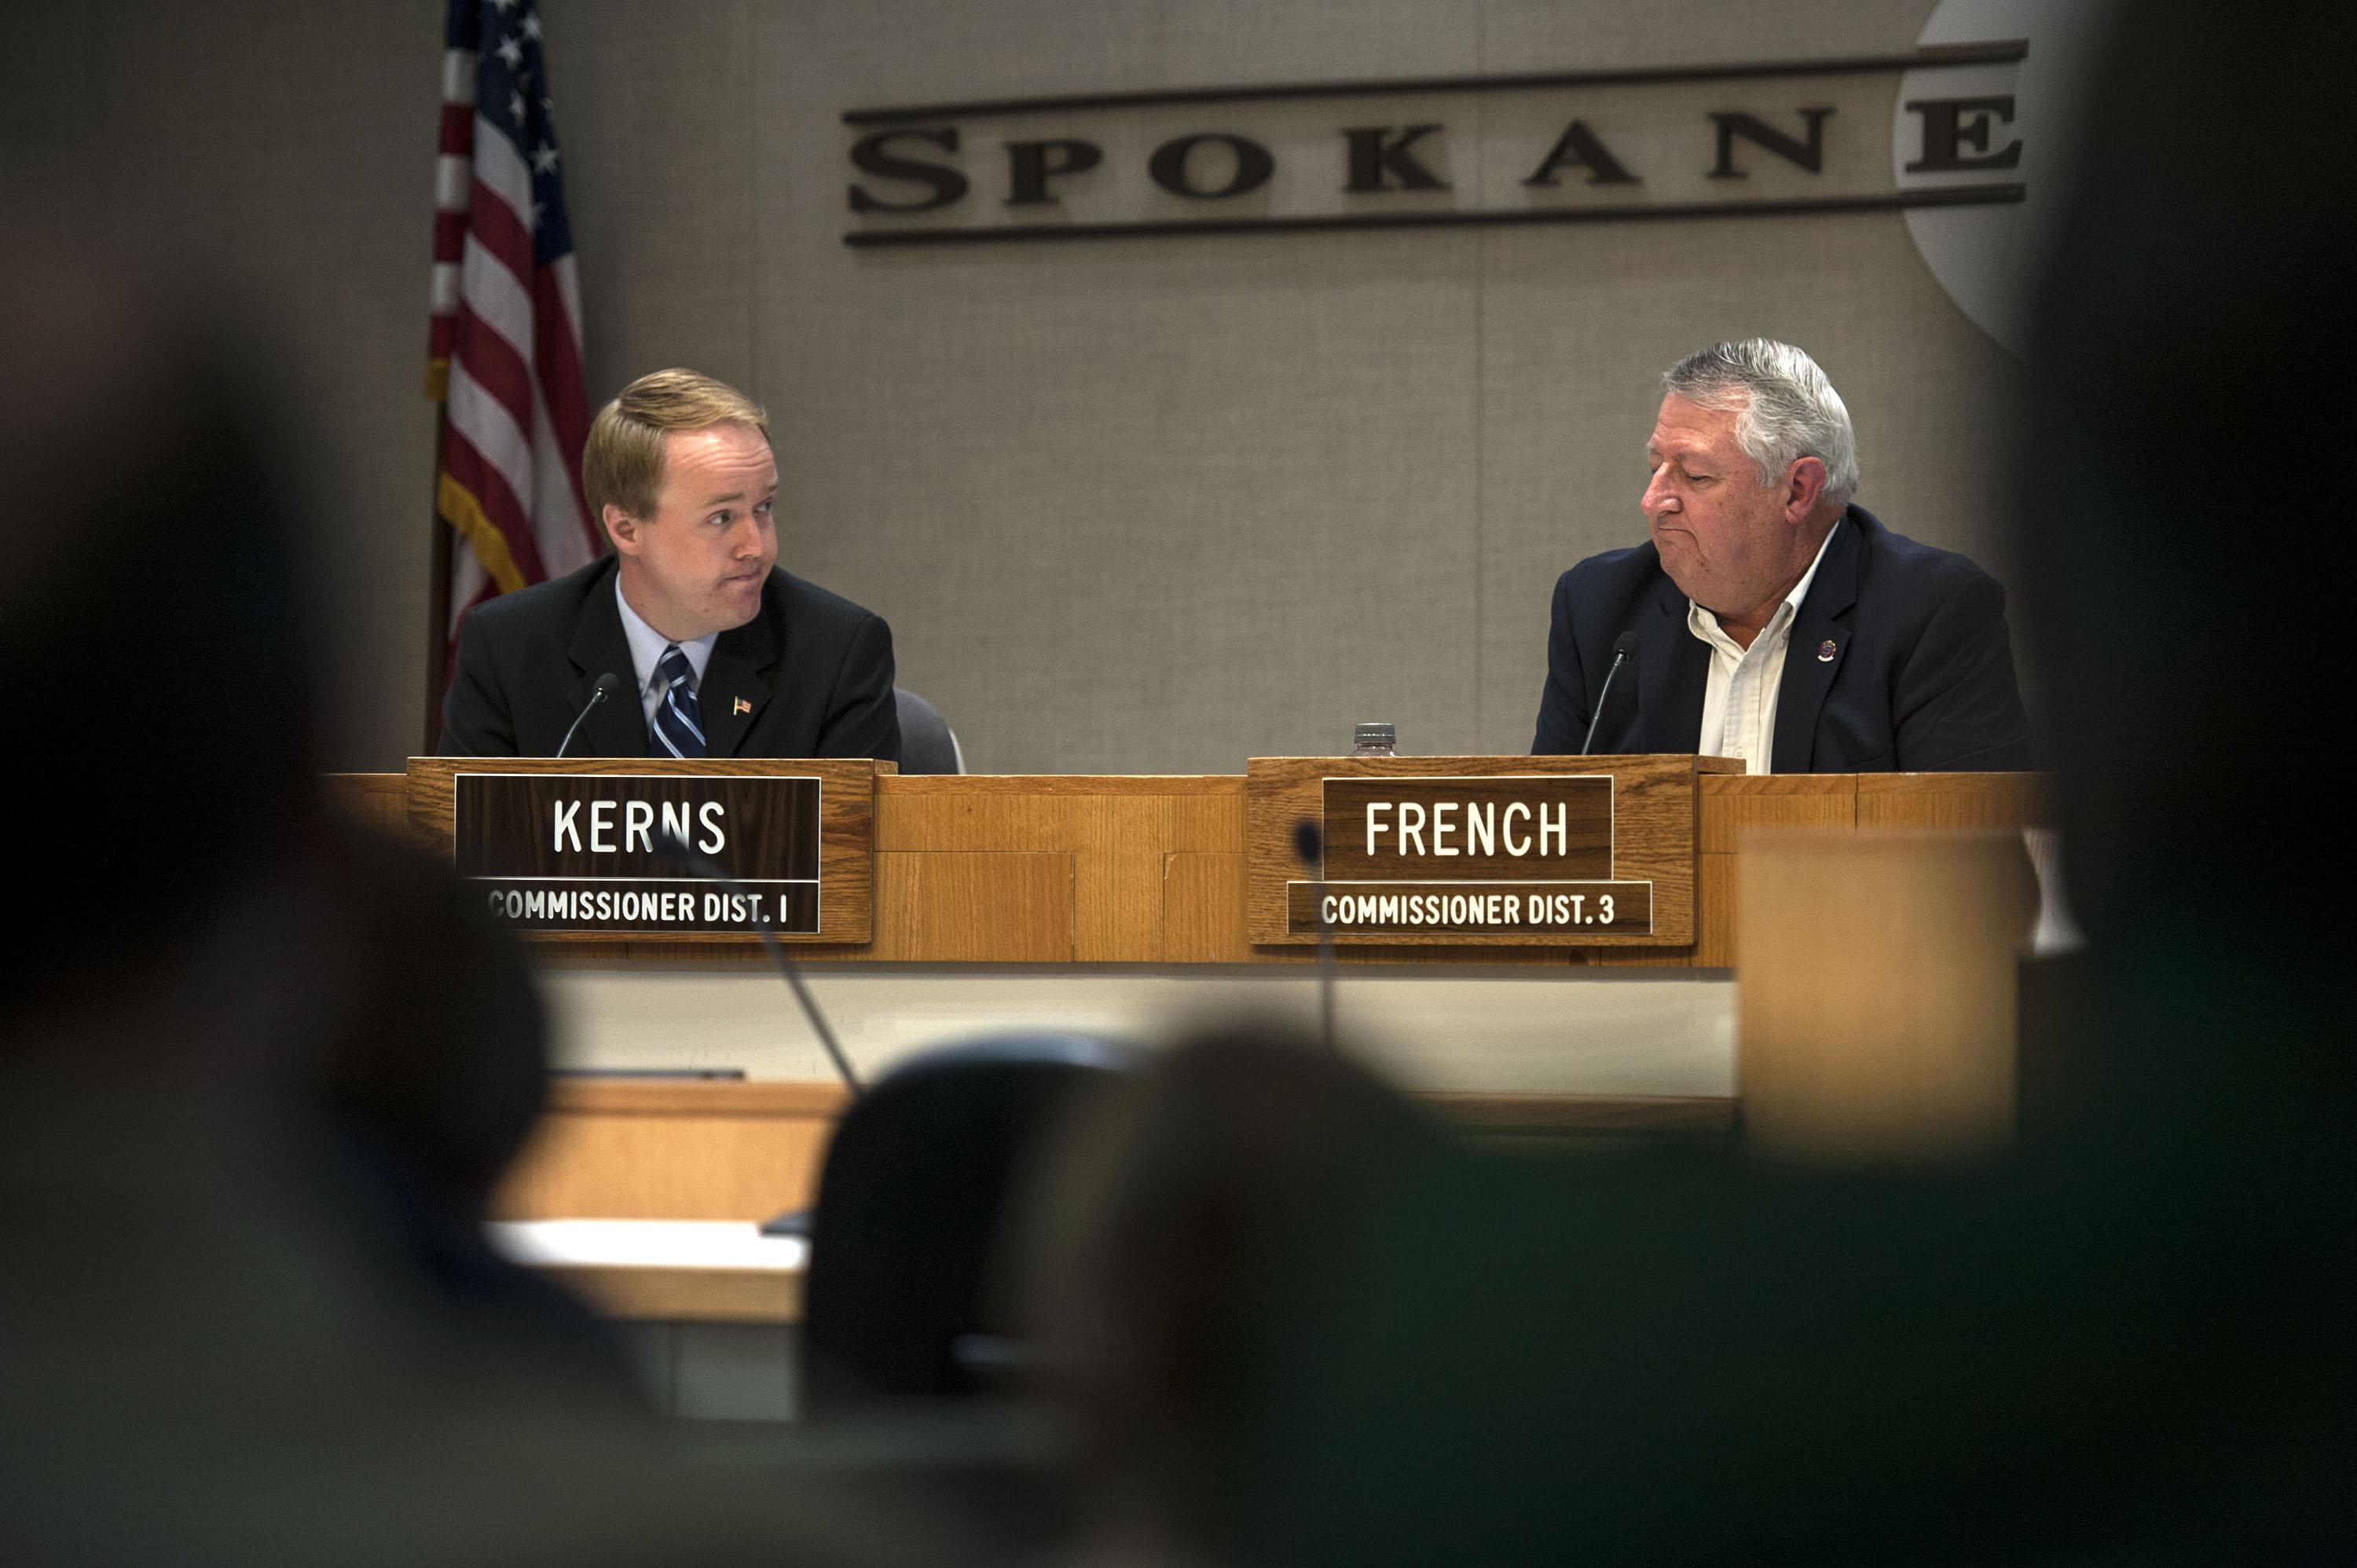 Spokane County won't ask job applicants about their criminal